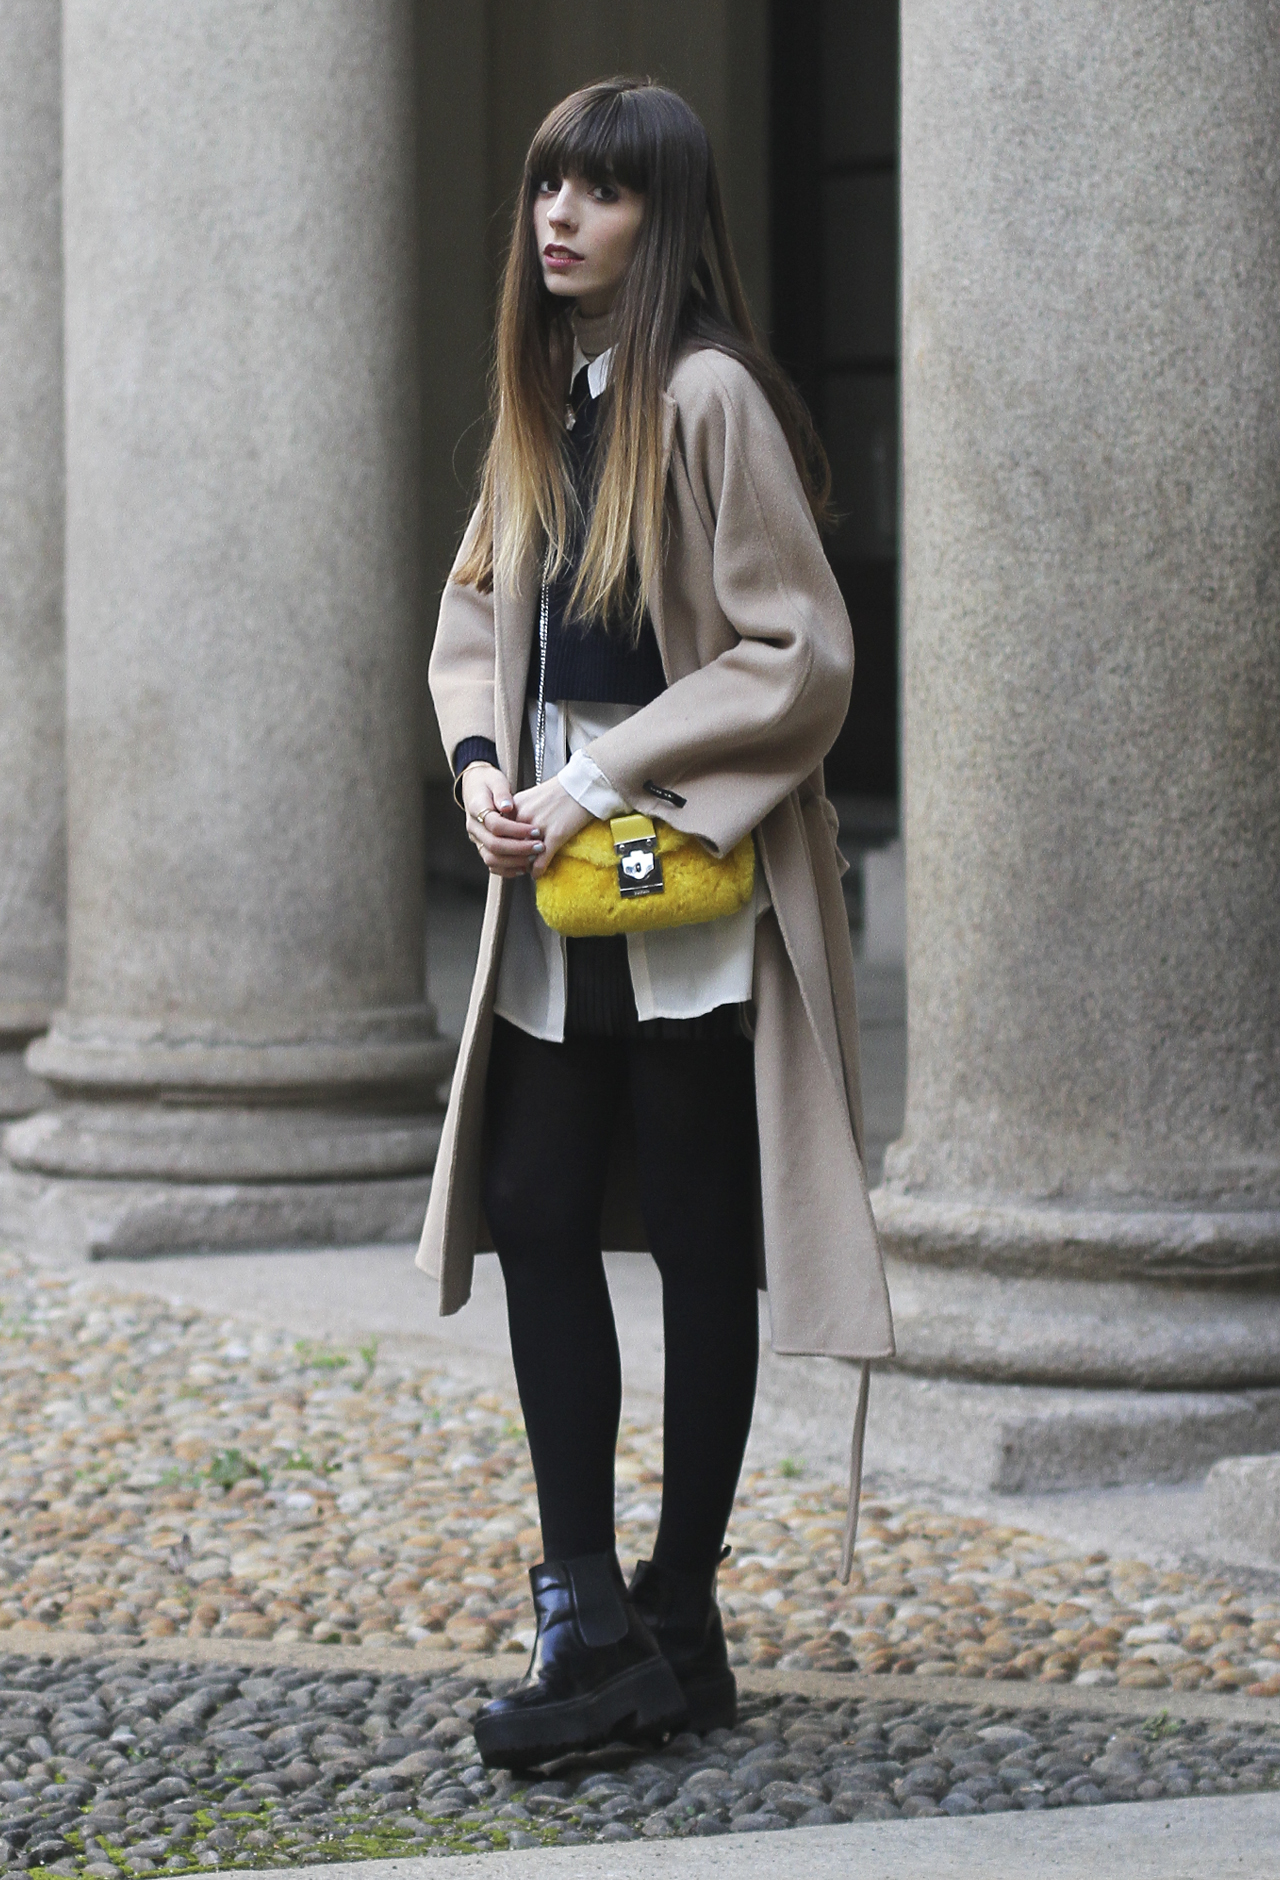 MILAN-FASHION-WEEK-TODS-MISSNOBODY-21